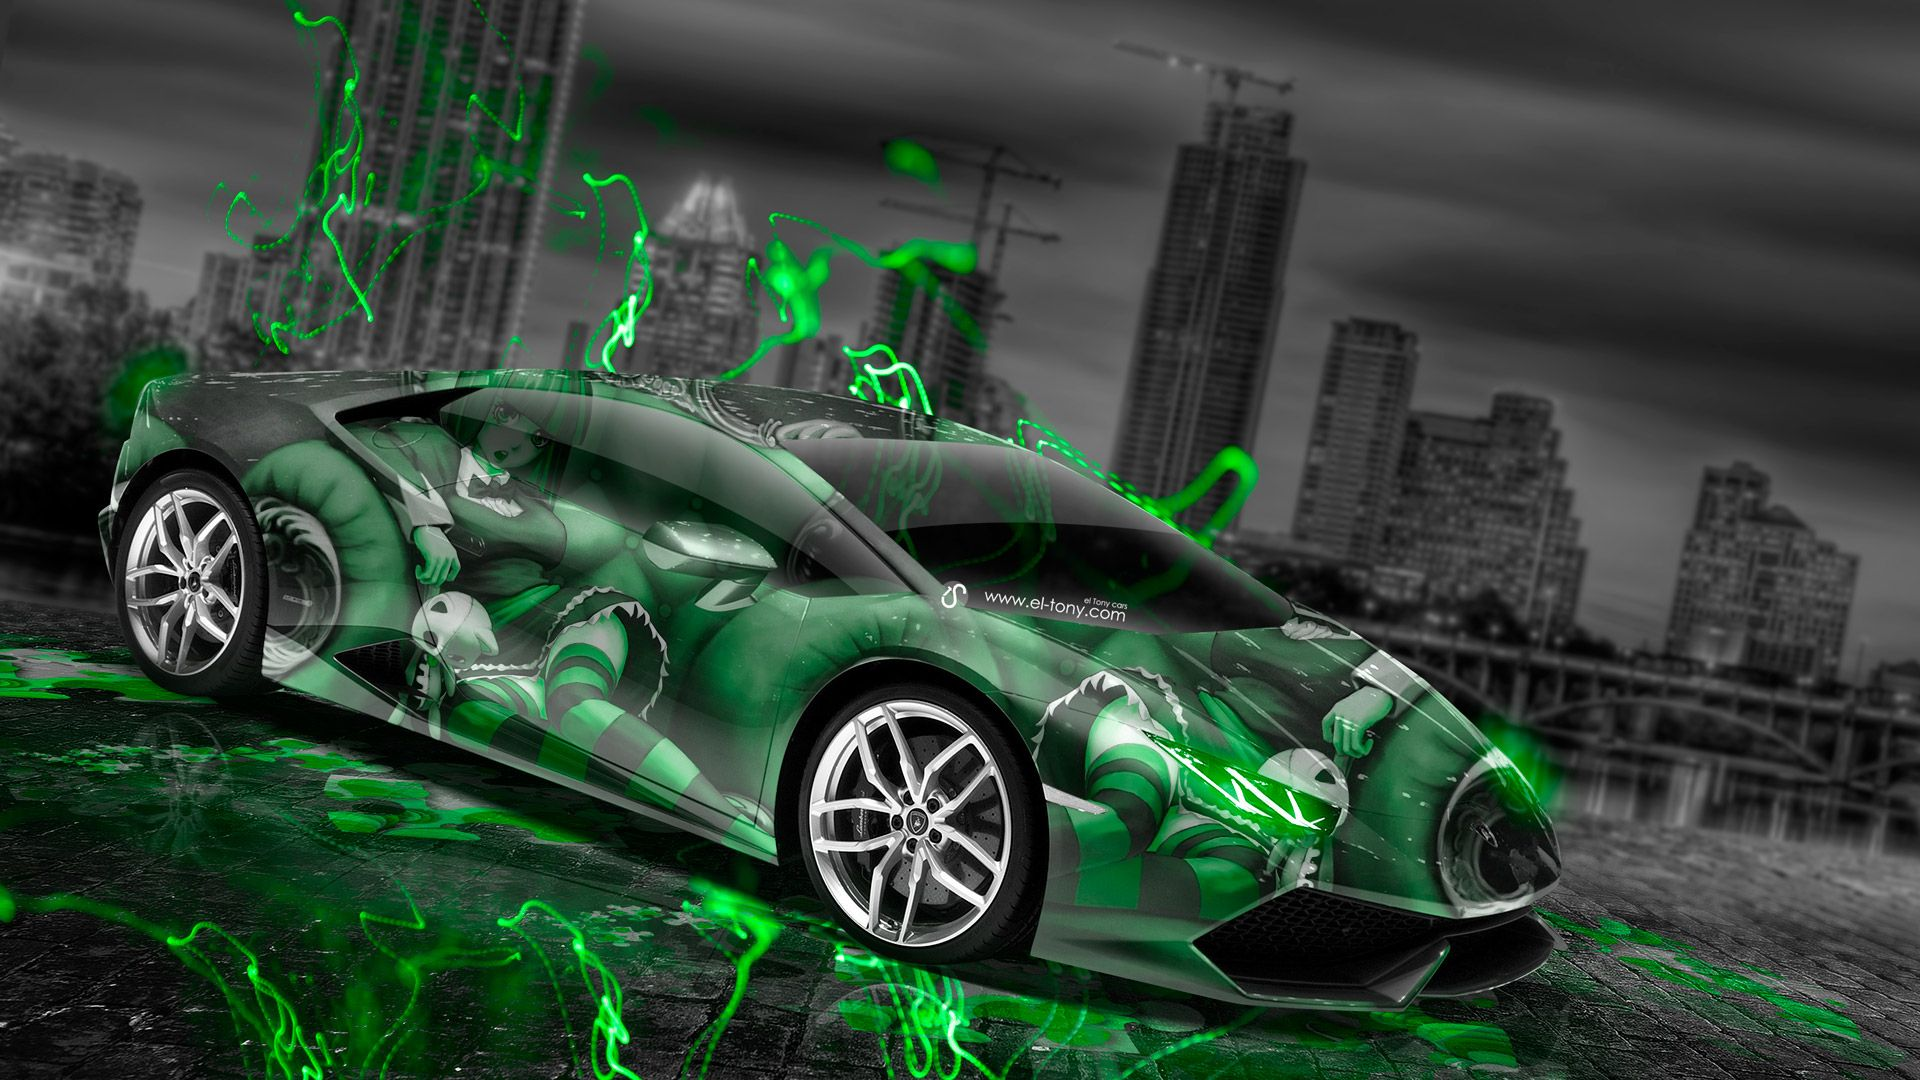 Green Lamborghini Wallpapers Top Free Green Lamborghini Backgrounds Wallpaperaccess